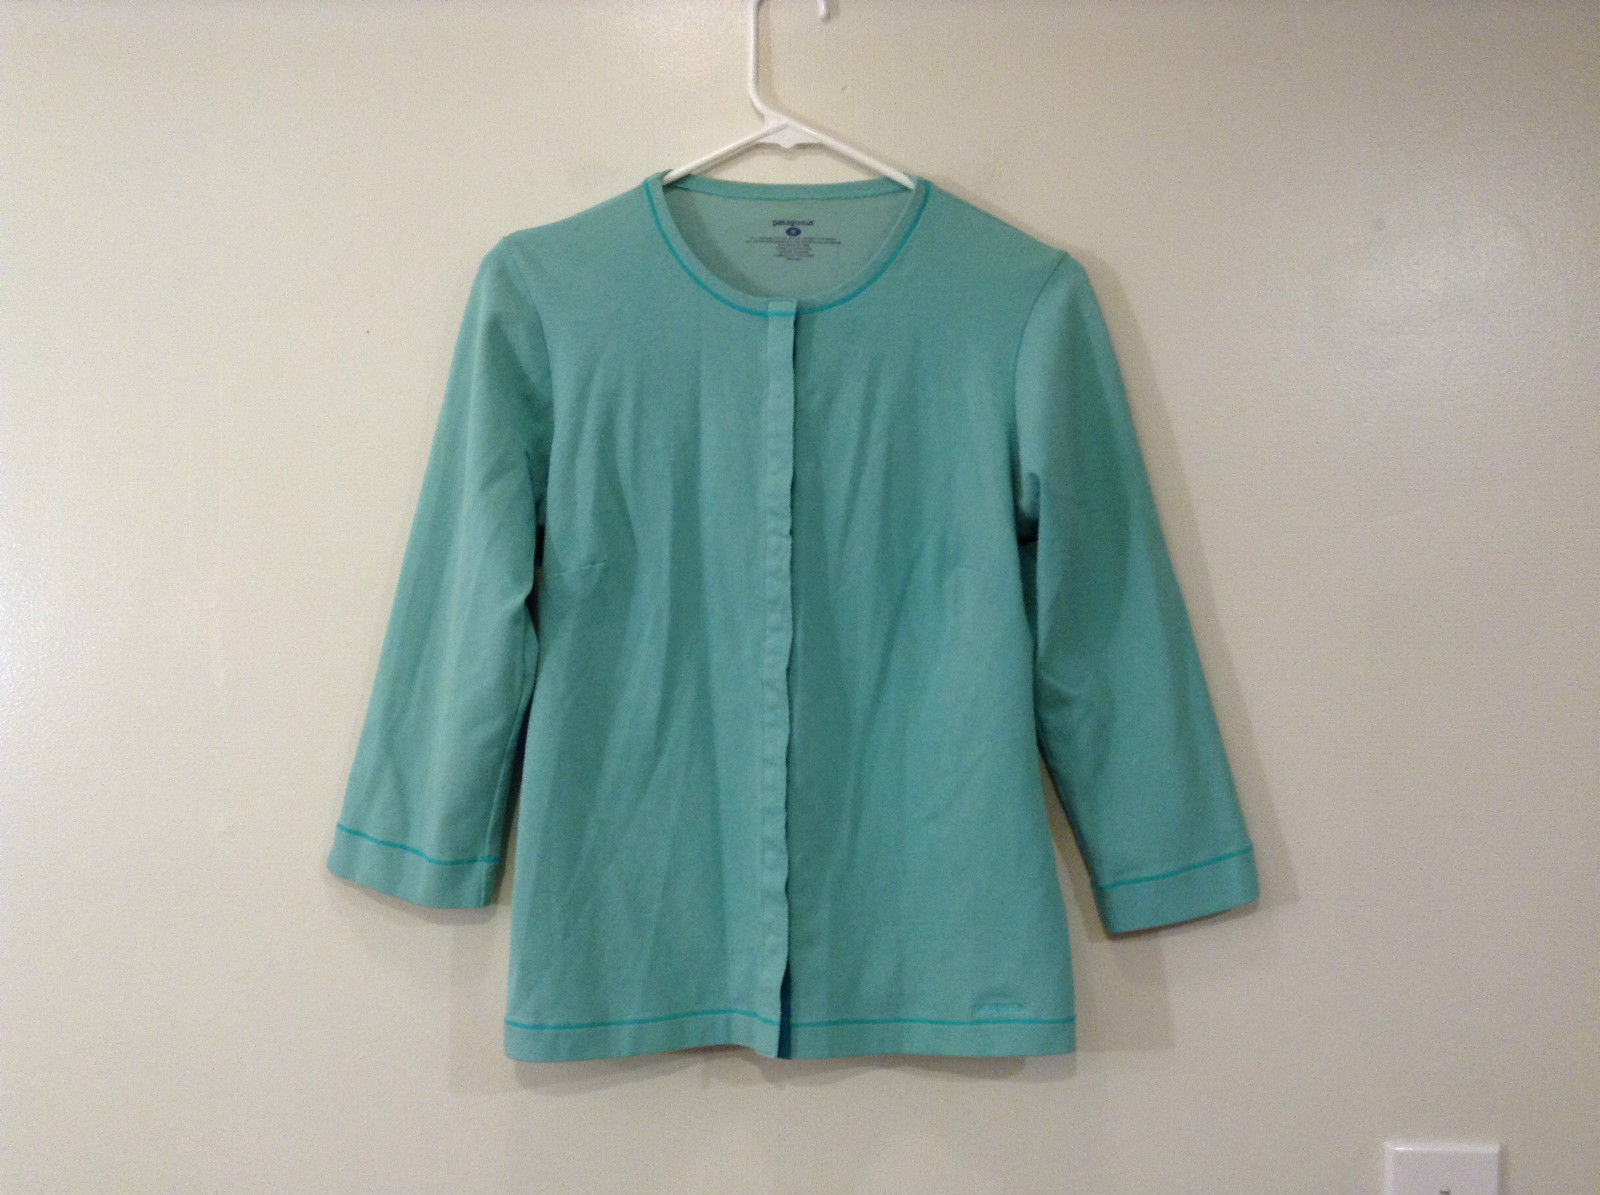 Green Patagonia Top Hidden Front Snap Closure Small  Slits on Sleeves Size M